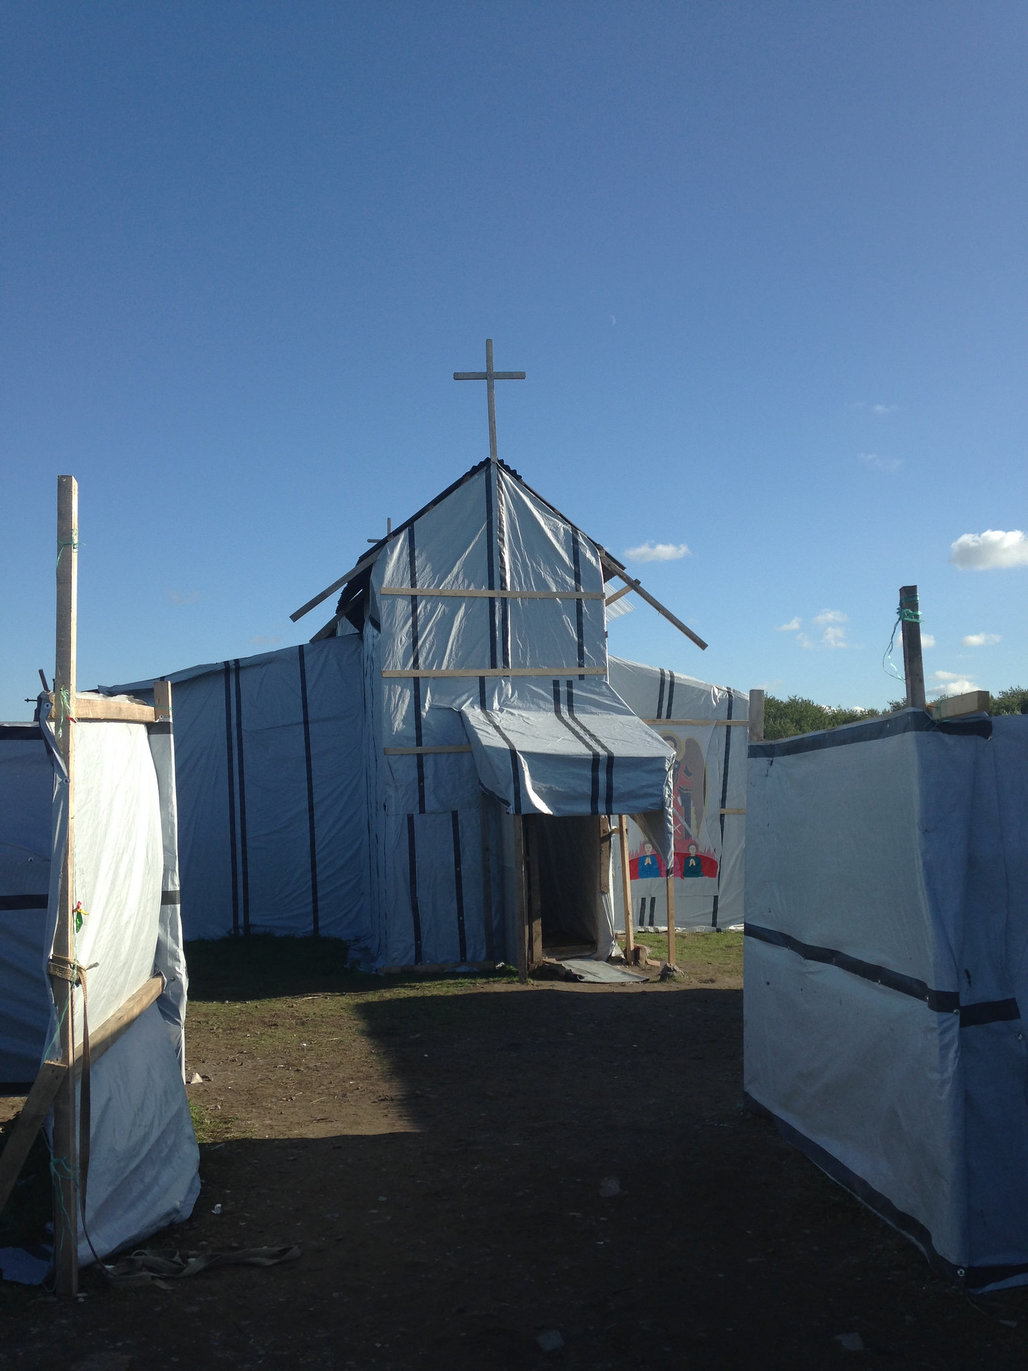 A church in the Calais camp. Photo: Global Justice Now via flickr